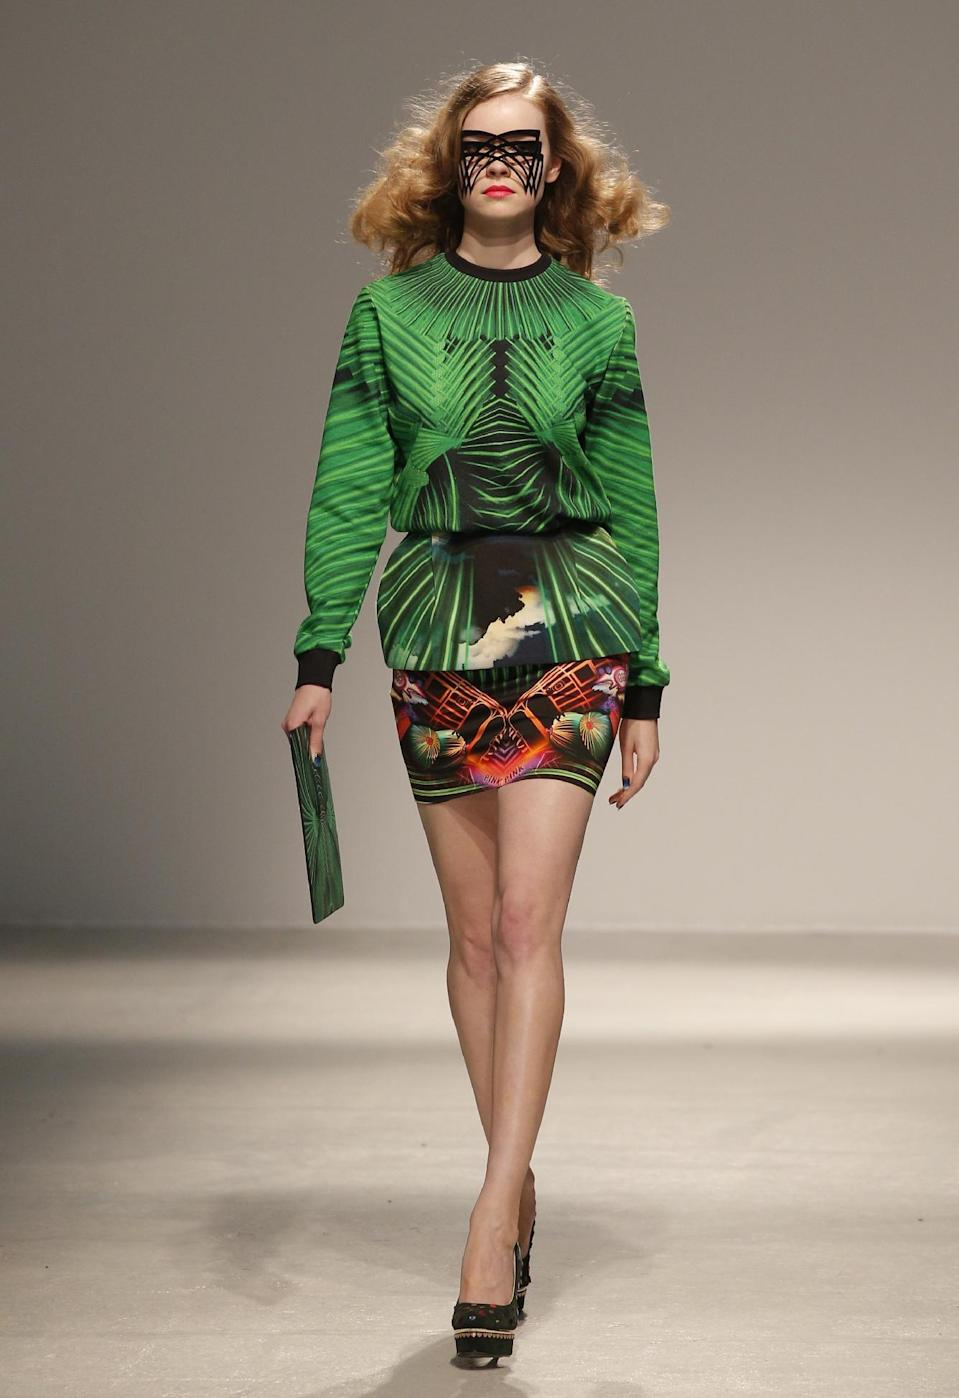 A model presents a creation by Indian fashion designer Manish Arora fior his Ready to Wear's Fall-Winter 2013-2014 fashion collection, presented Thursday, Feb.28, 2013 in Paris. (AP Photo/Christophe Ena)